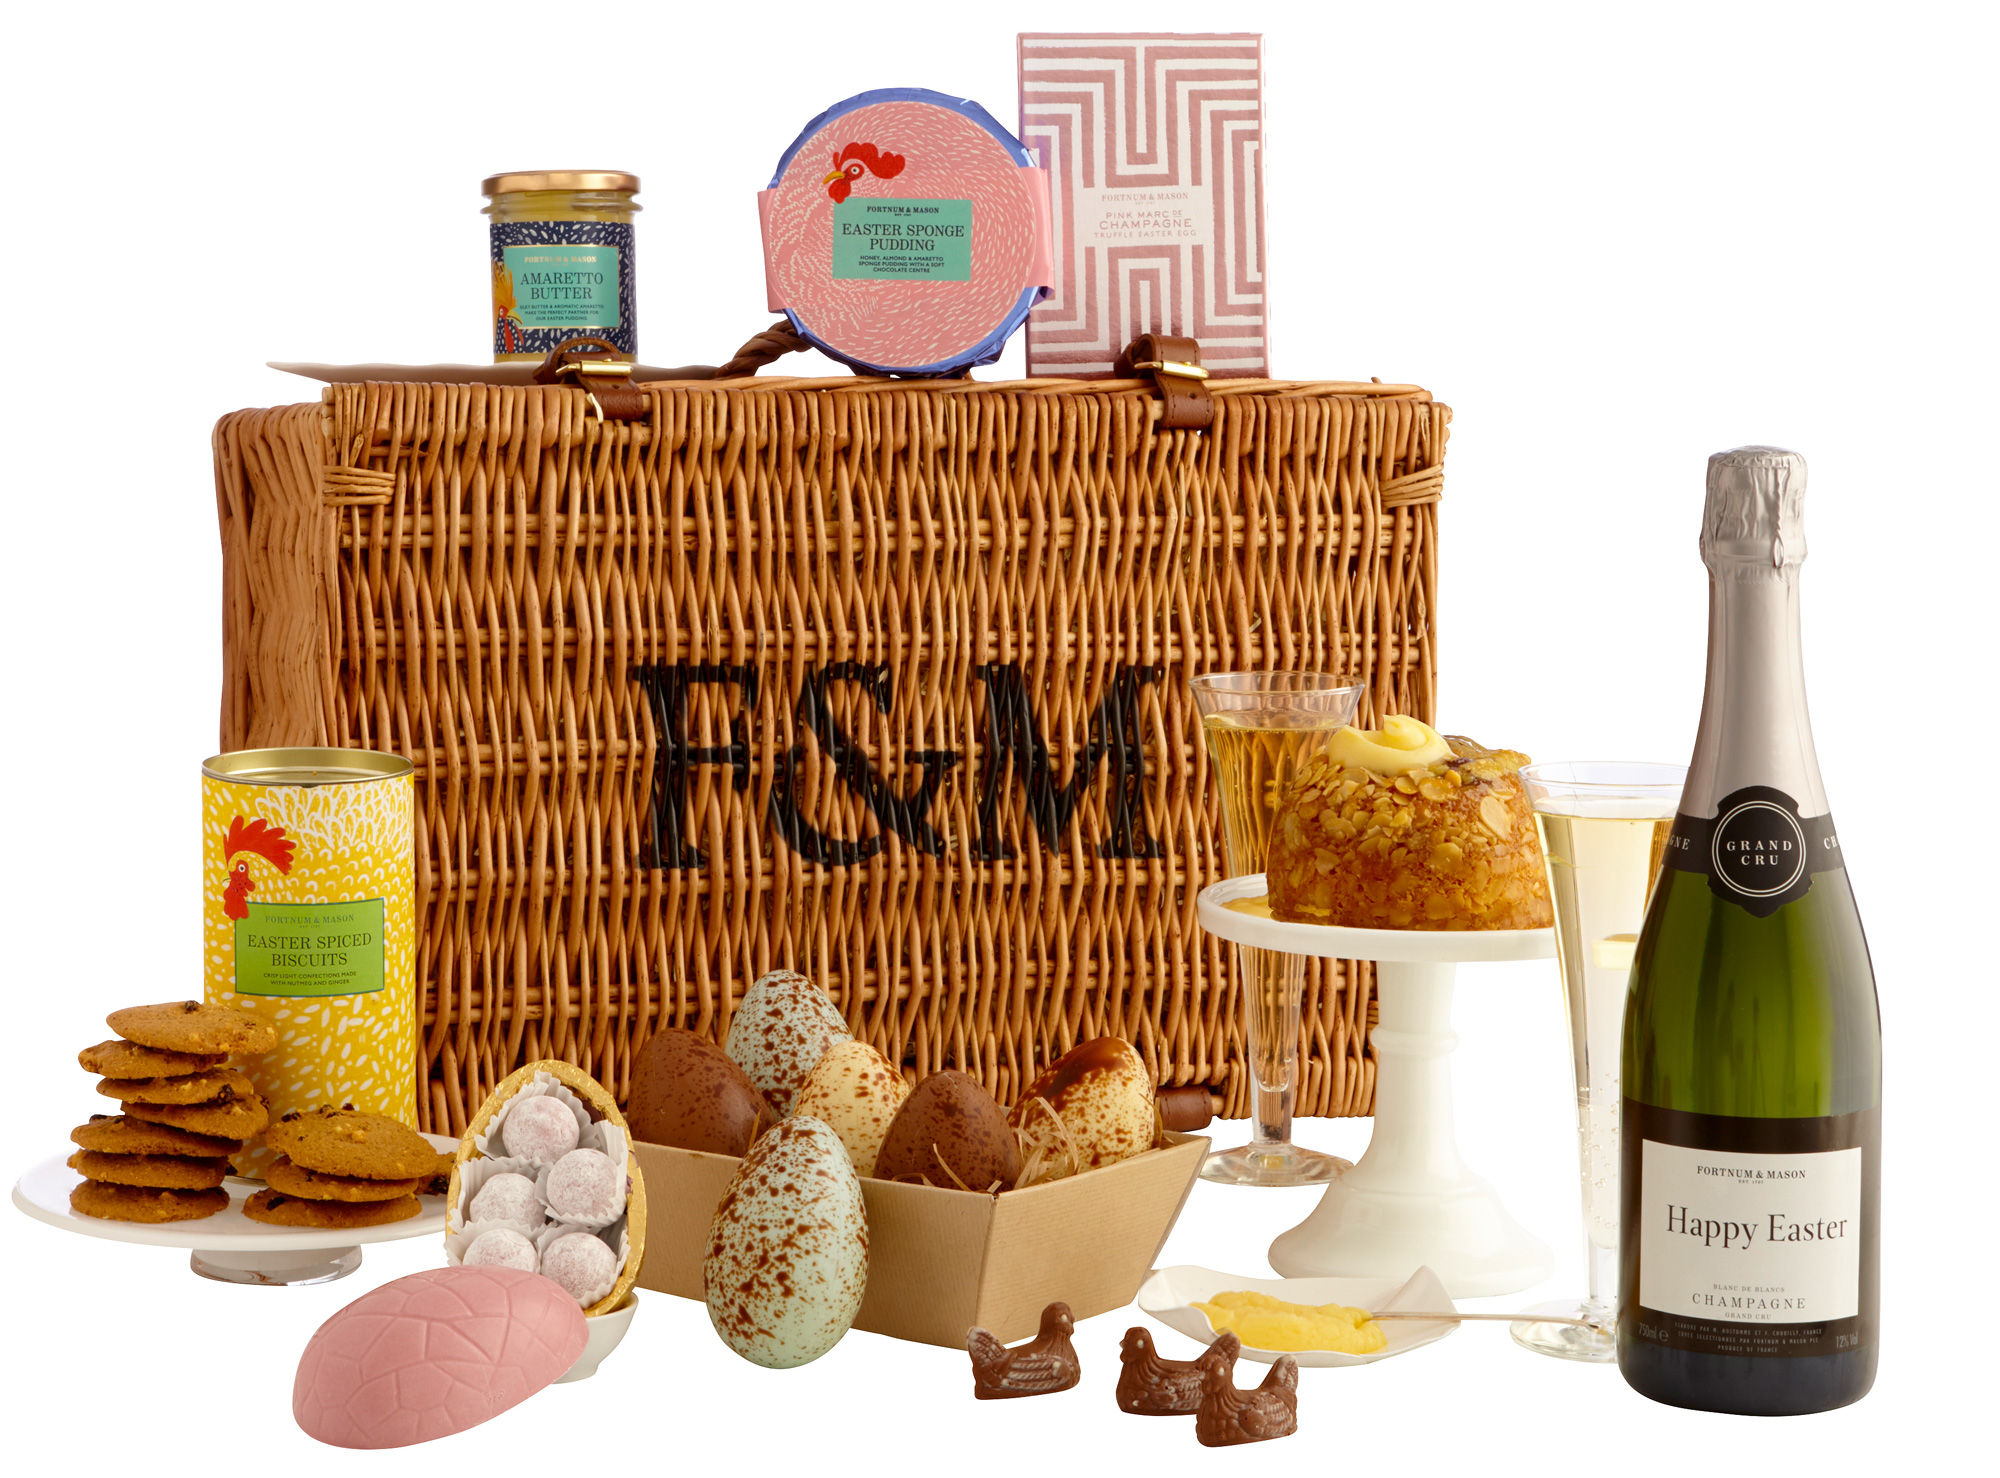 Fortnum & Mason's Easter eggs: fit for a Queen